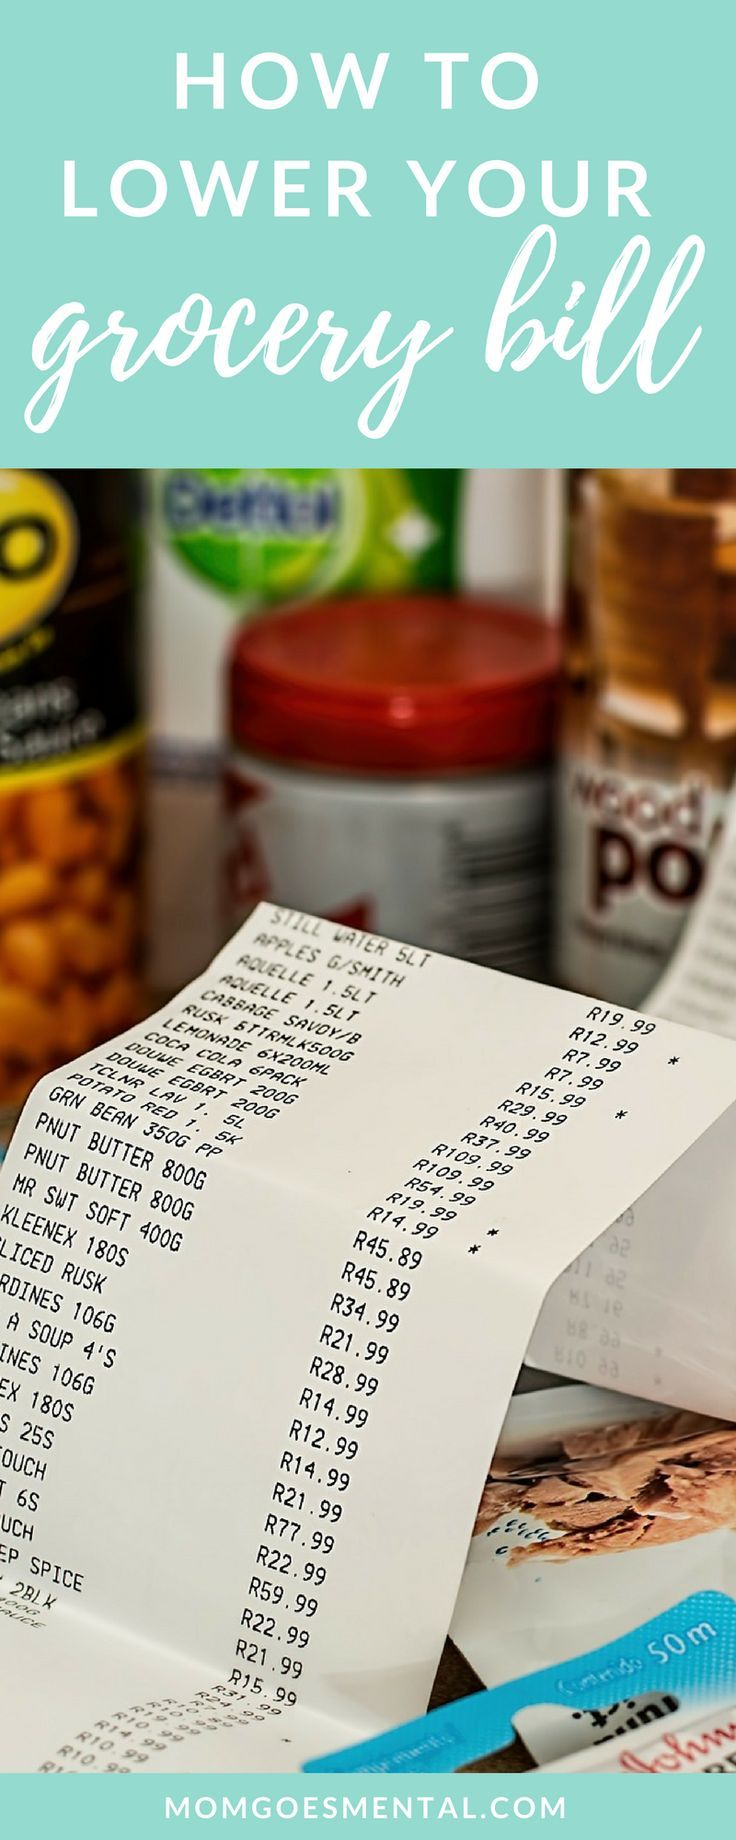 Lower your grocery budget with this EASY method! This article is loaded with tips to reduce your grocery spending. #budget #finance #savemoney via @momgoesmental